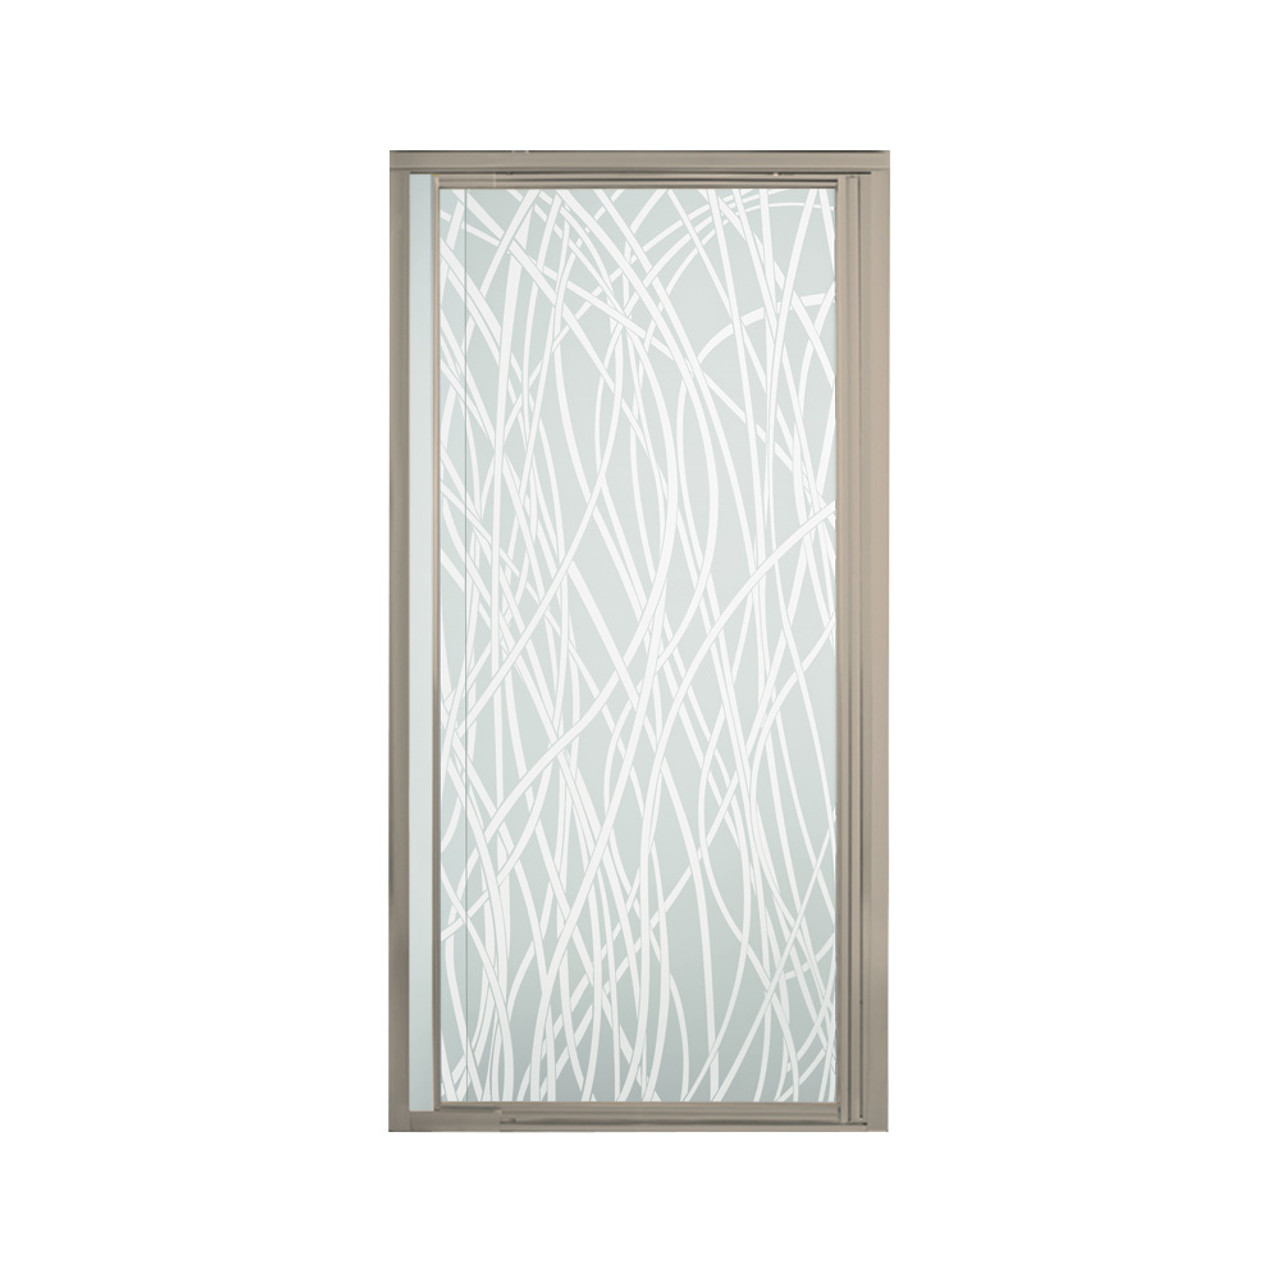 Sterling 1505d 42n G65 Vista Pivot Ii Framed Alcove Shower Door With Tangle Glass